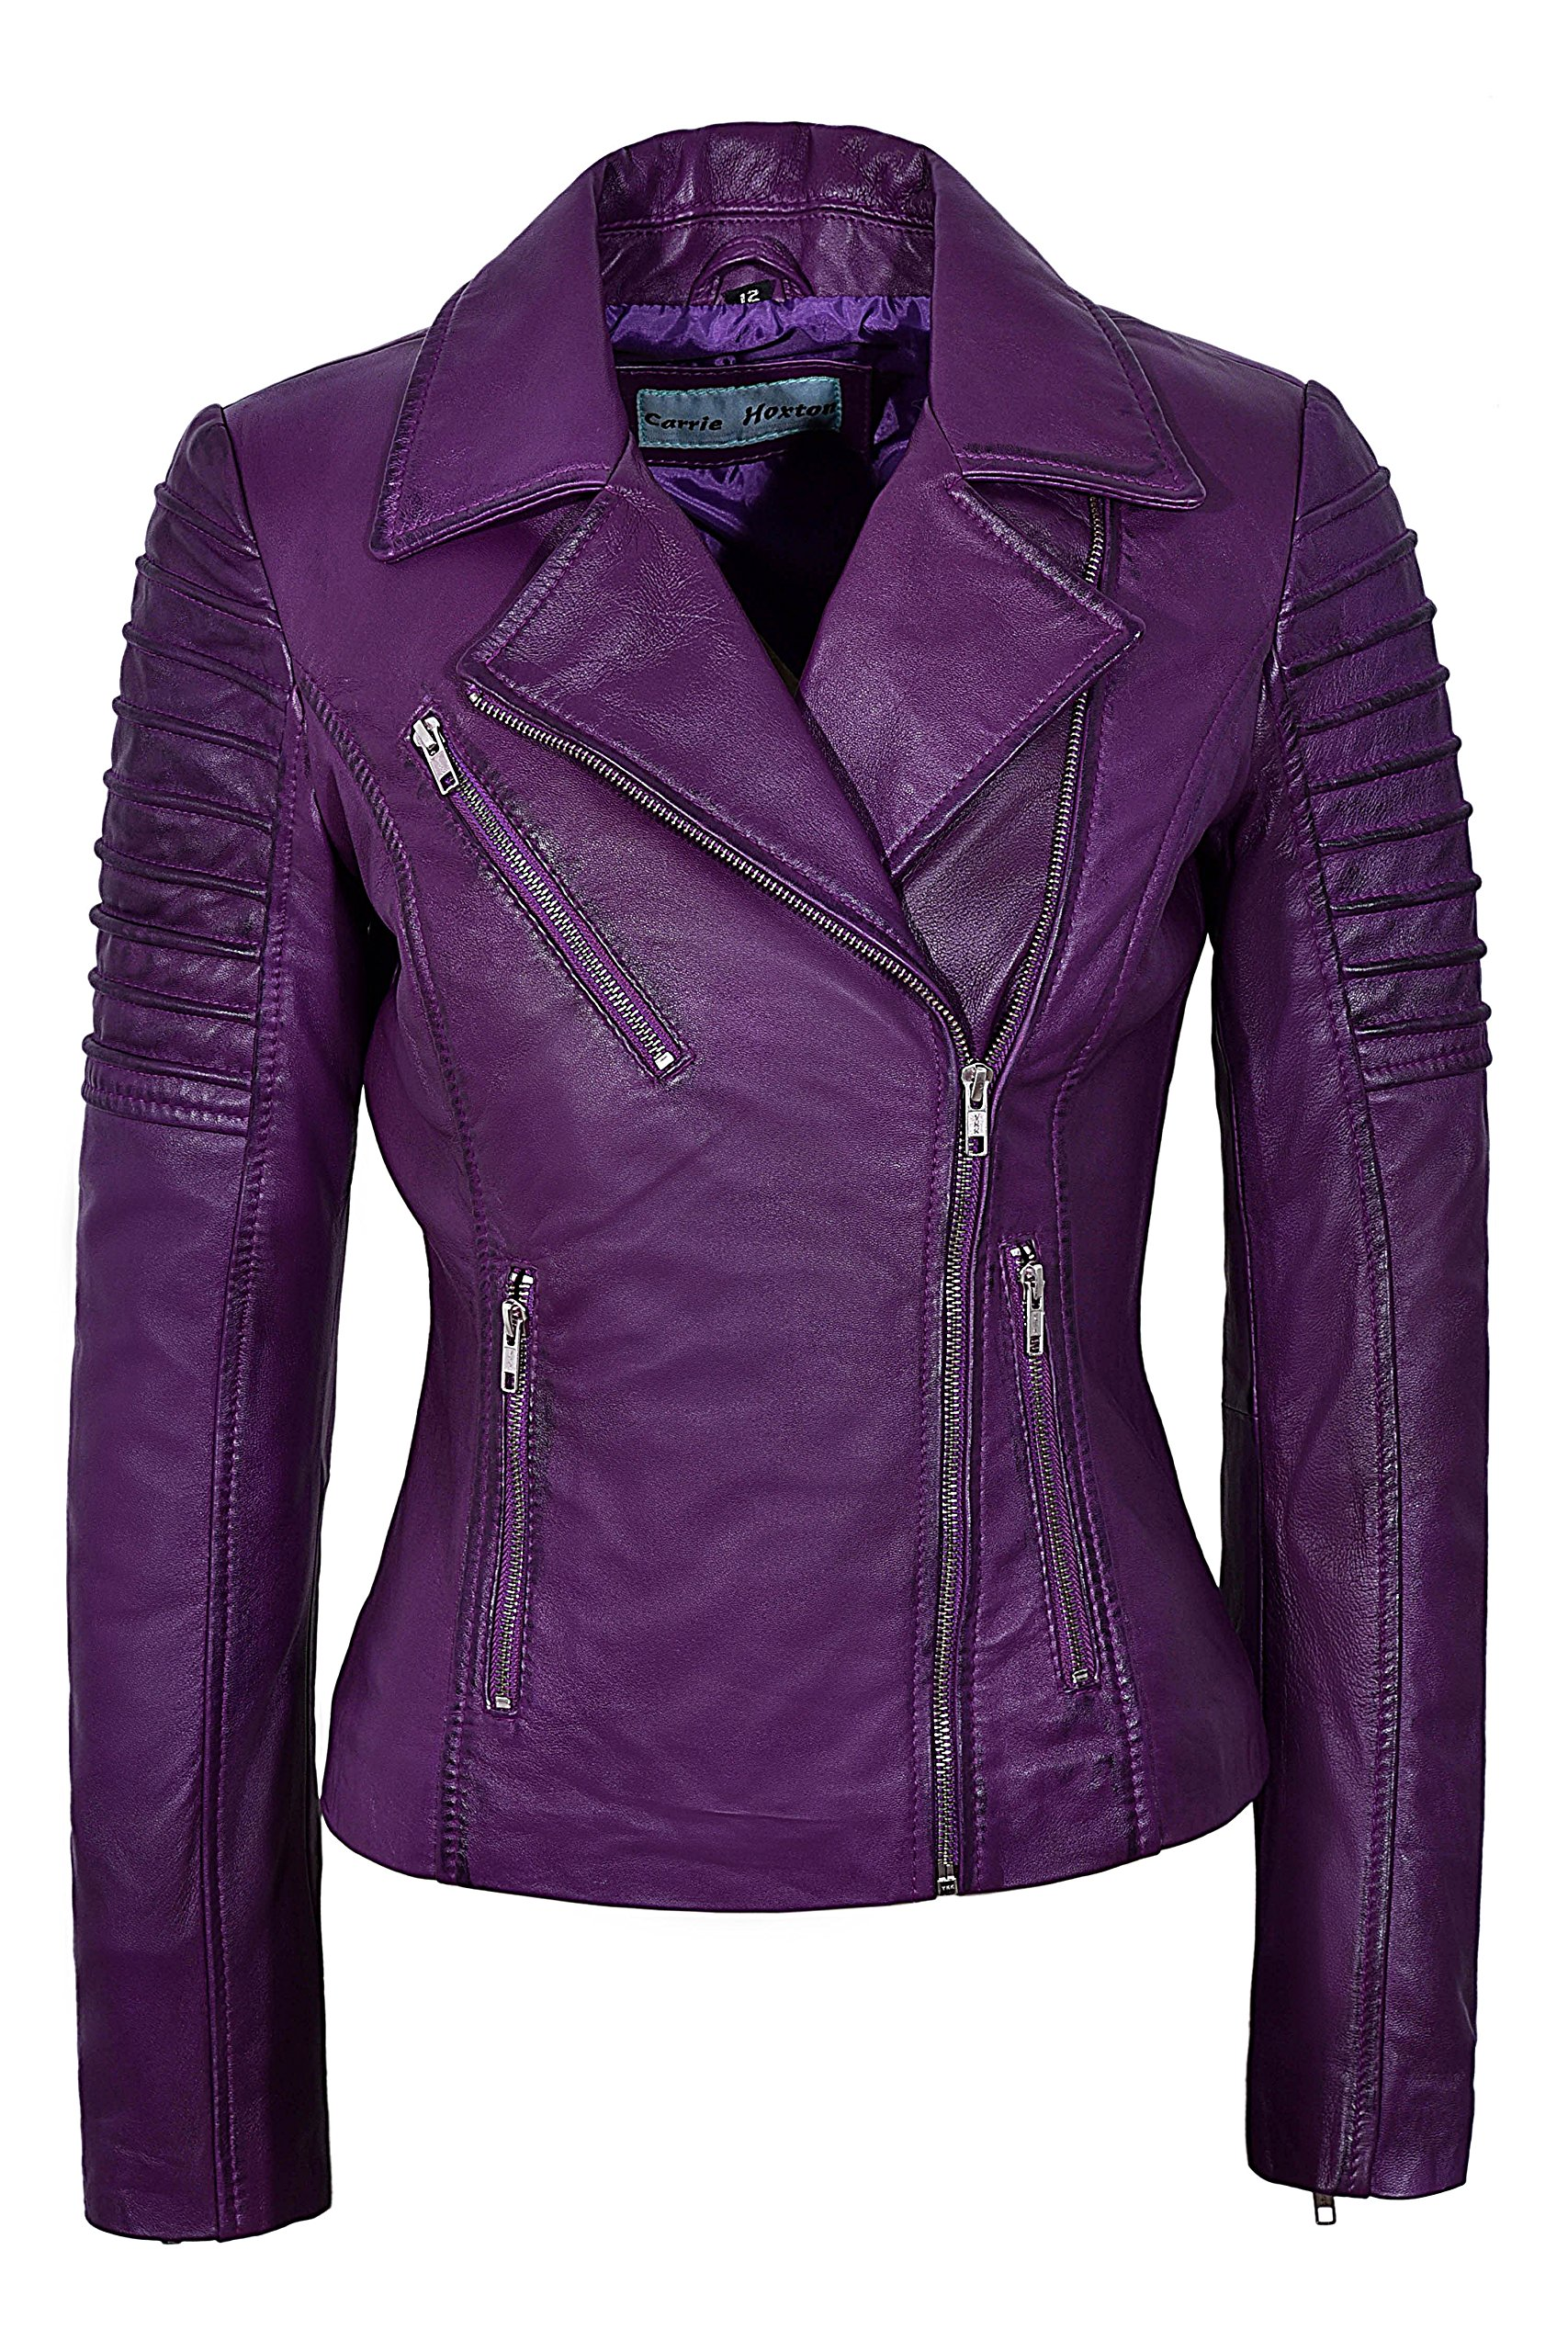 Smart Range New Ladies 9334 Fashion Designer Biker Style Real Soft Lambskin Leather Jacket (UK 18 / US 14, Purple) by Smart Range